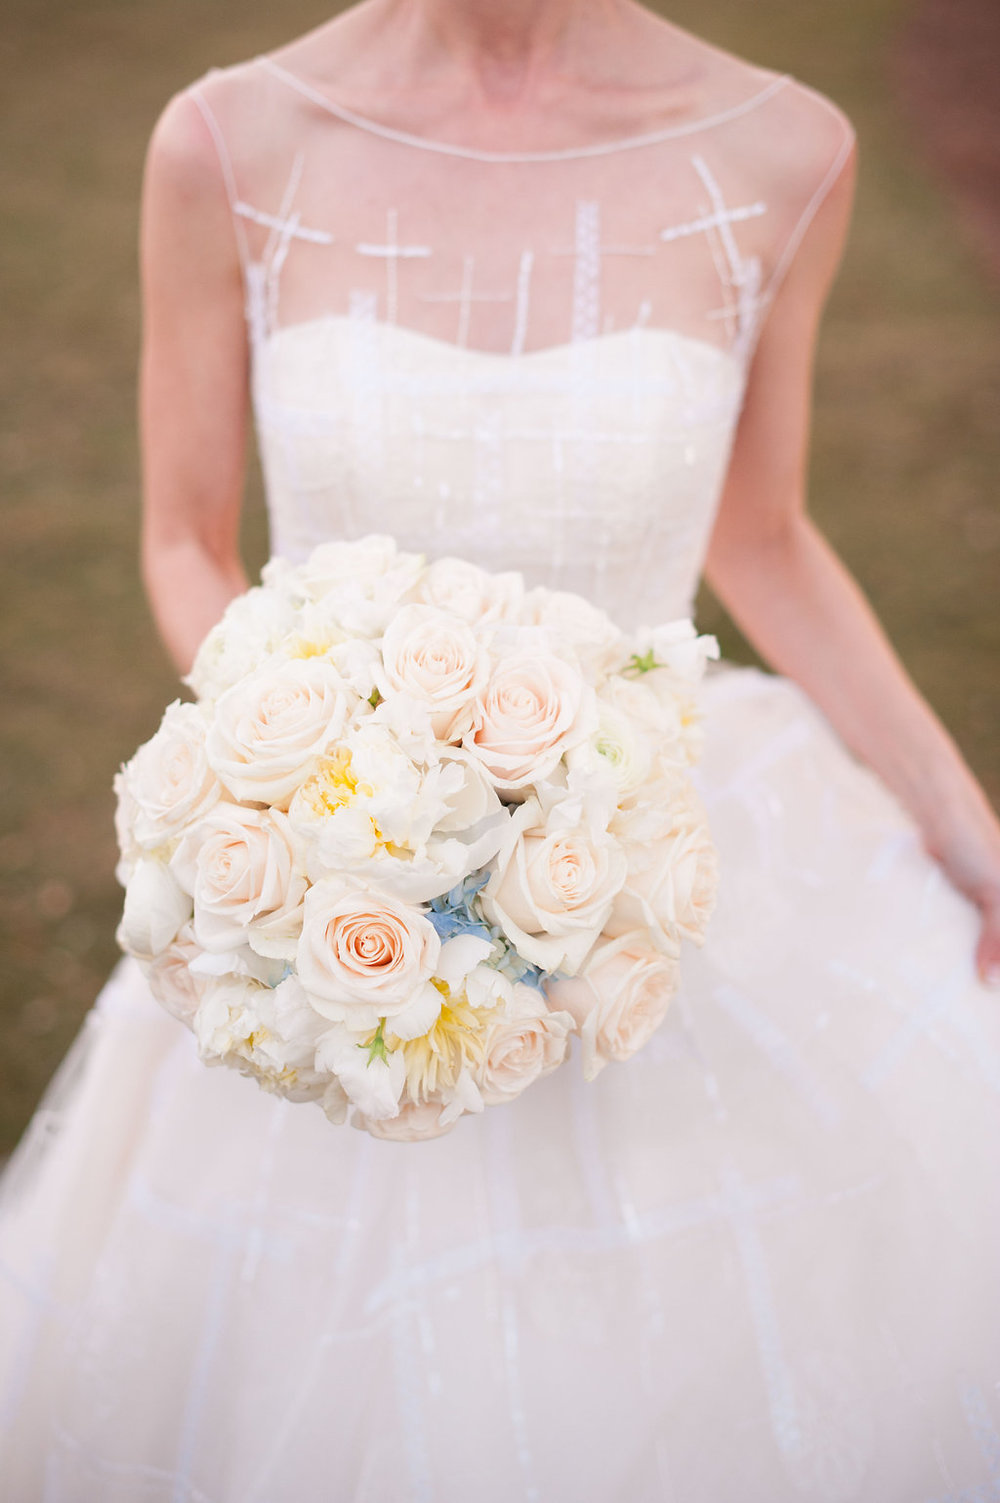 The bride carried a tight, round bouquet full of roses with soft blue hydrangea peeking through.